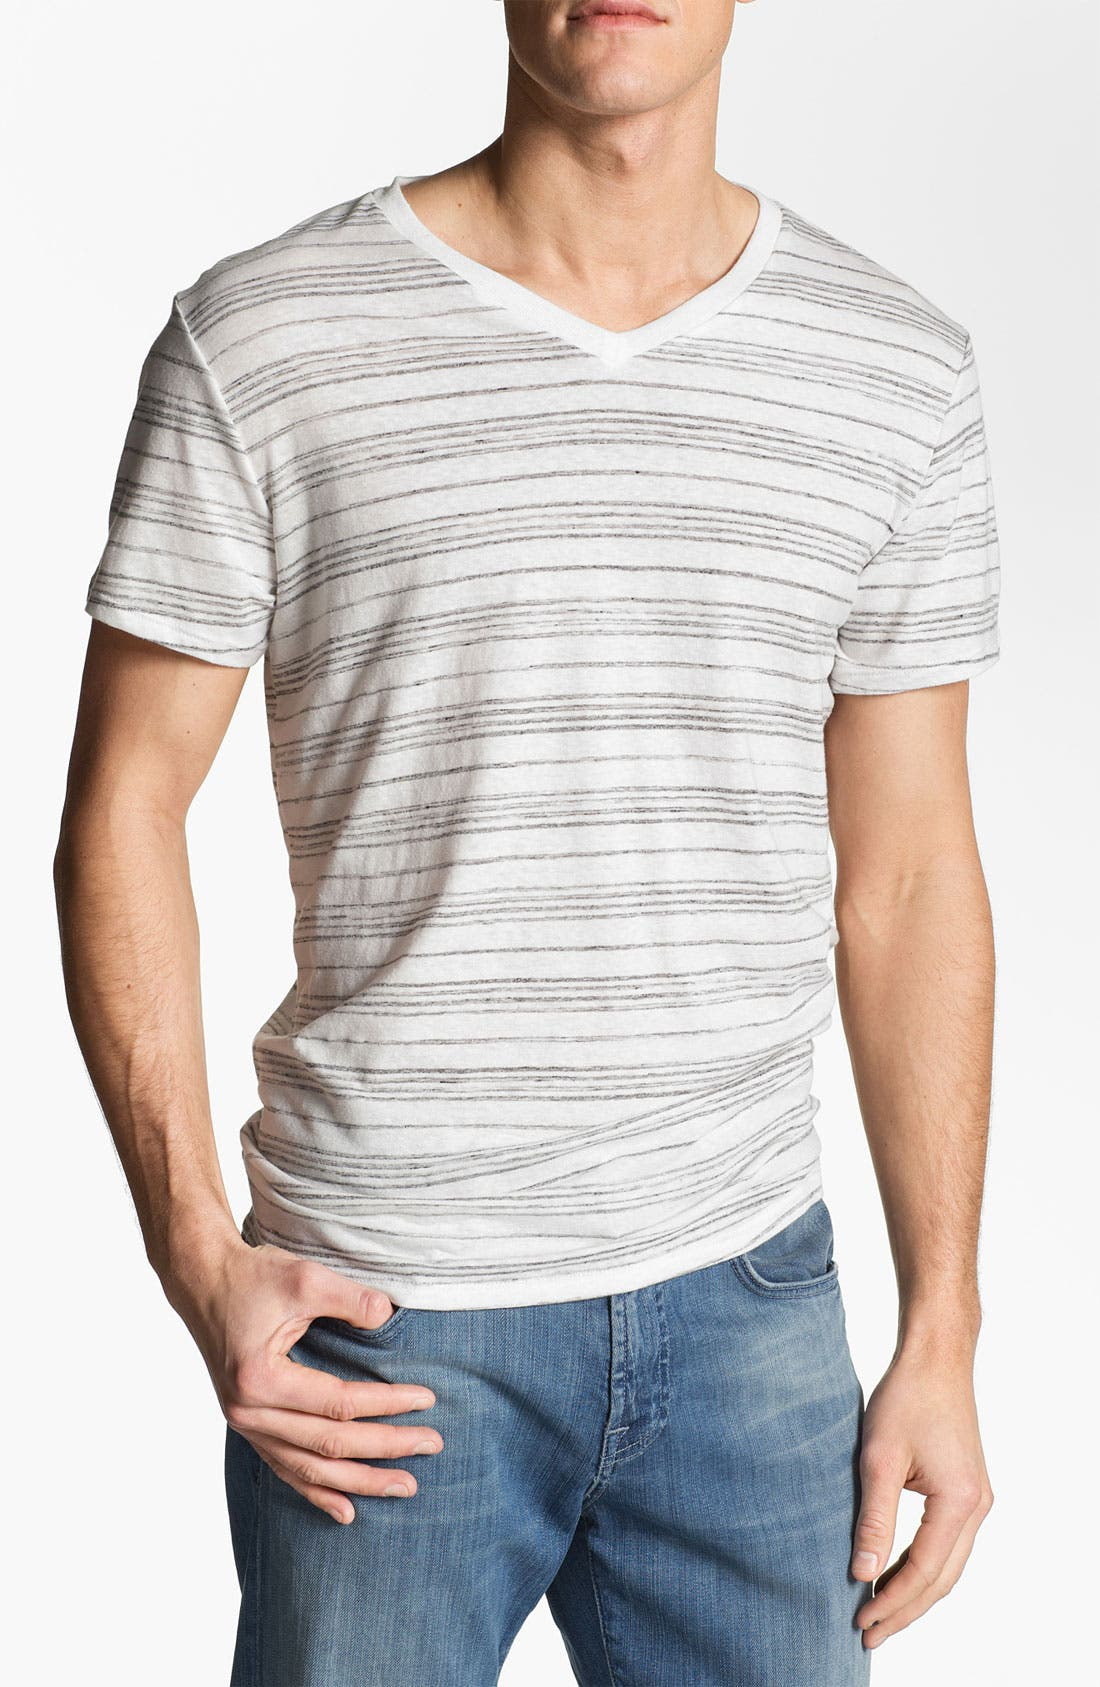 Main Image - Threads for Thought 'Crazy Stripe' V-Neck T-Shirt